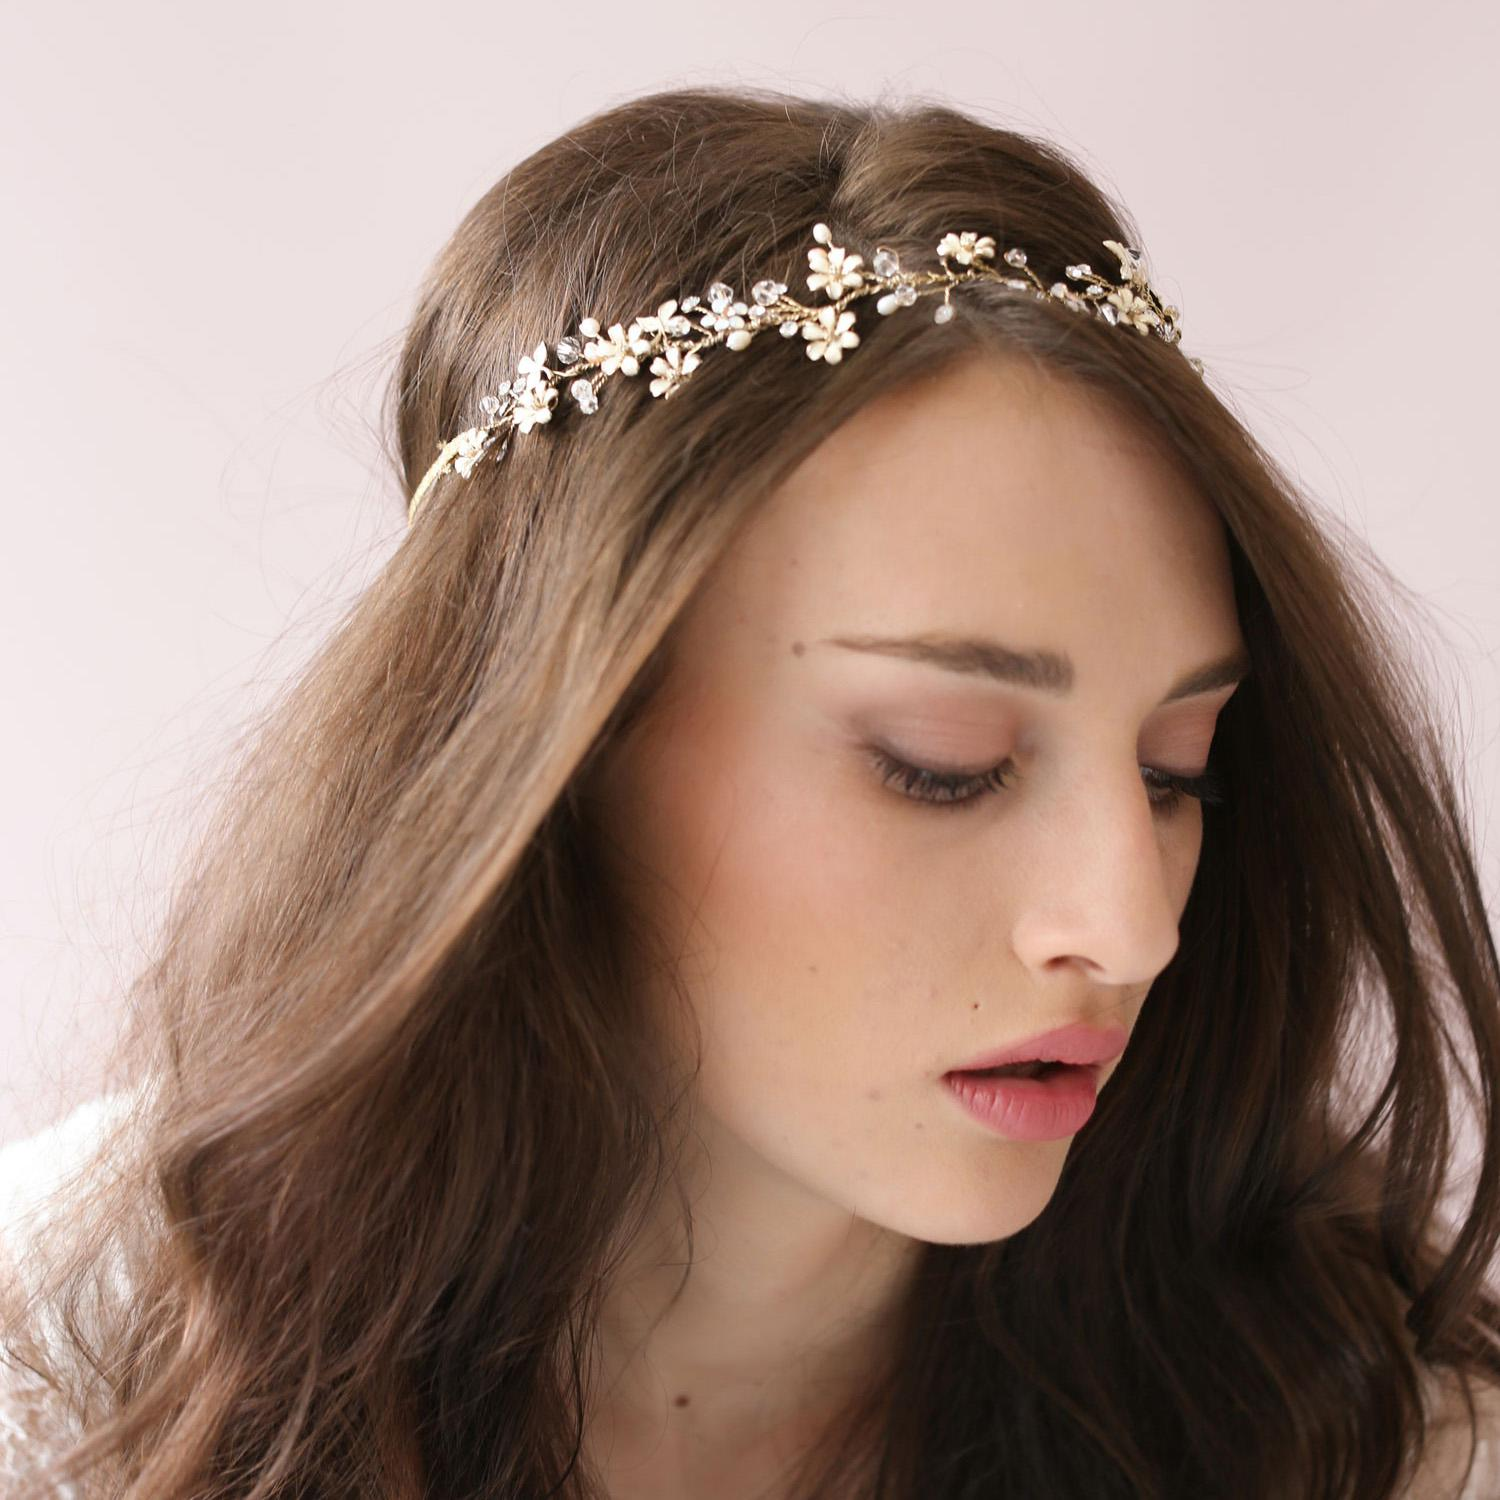 We wedding headpiece jewellery - Wedding Hair Bands We Only Sale High Quality Wedding Headpiece Items Every Item Is Selected Elaboratelywelcome